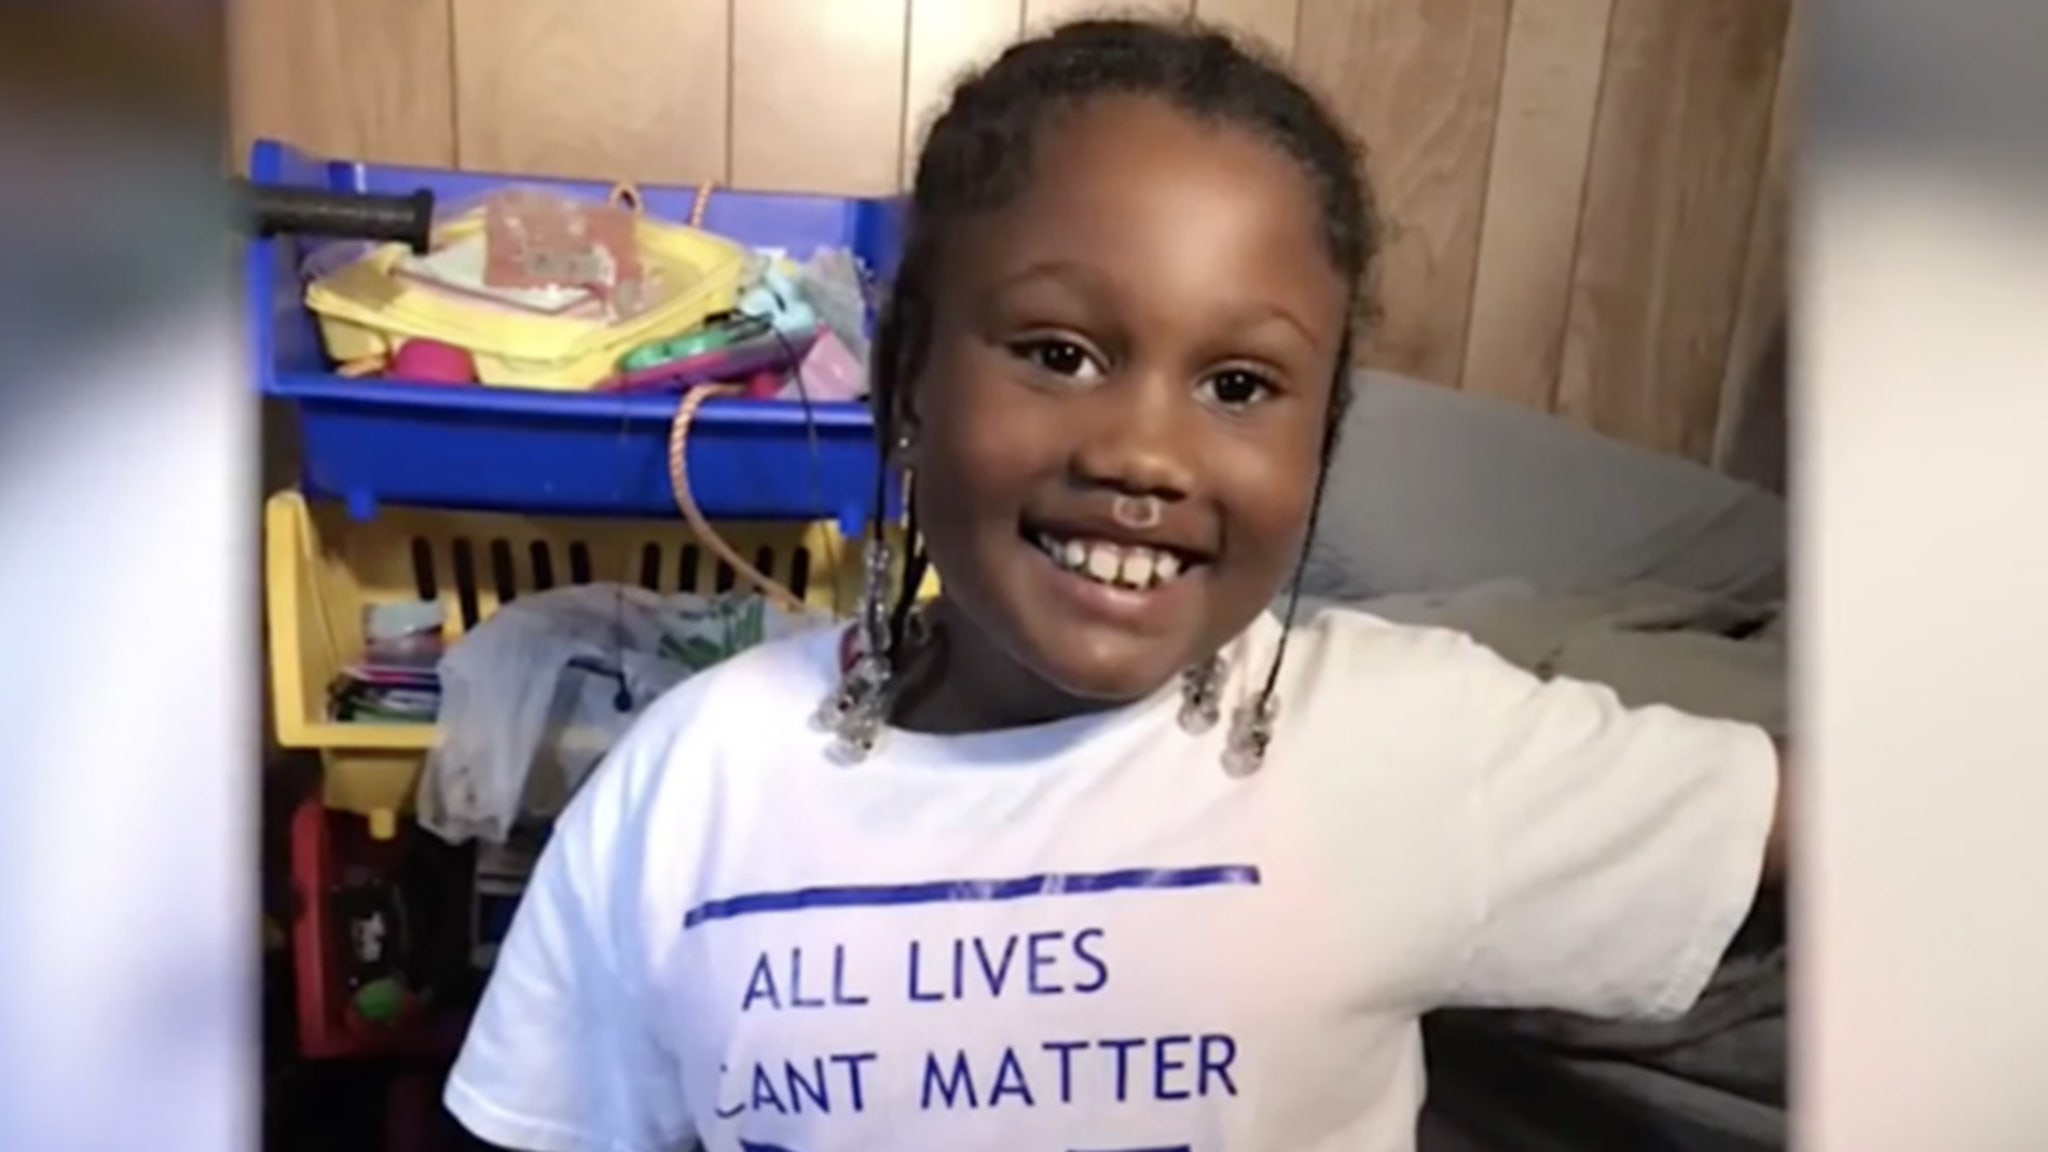 Black Lives Matter 6-Year-Old Kicked Out of School ... Over BLM Shirt